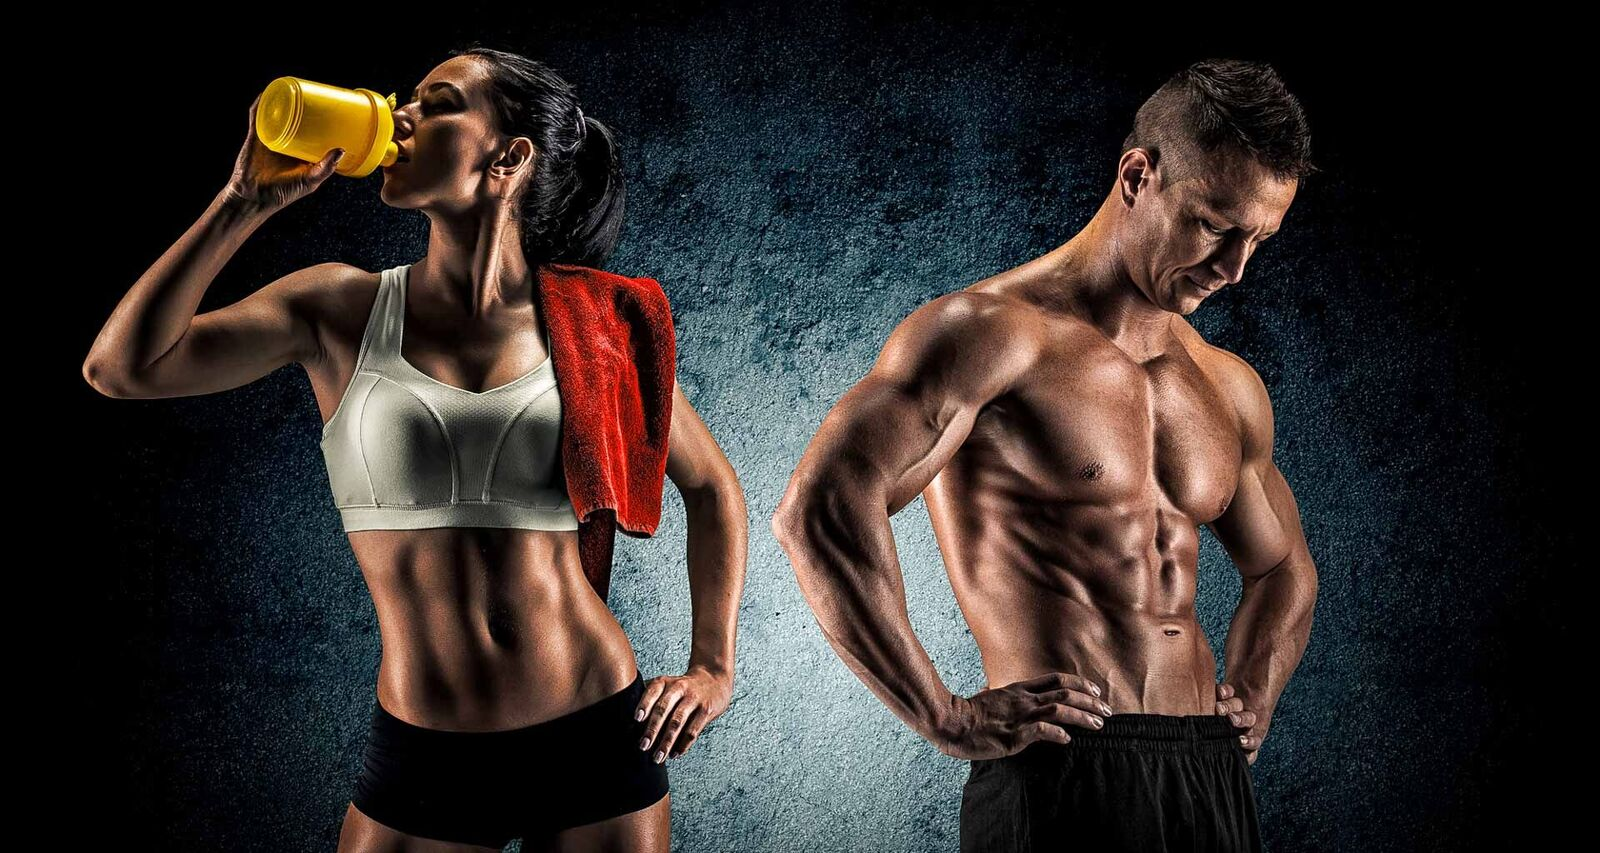 igf-1 test bodybuilders man and woman